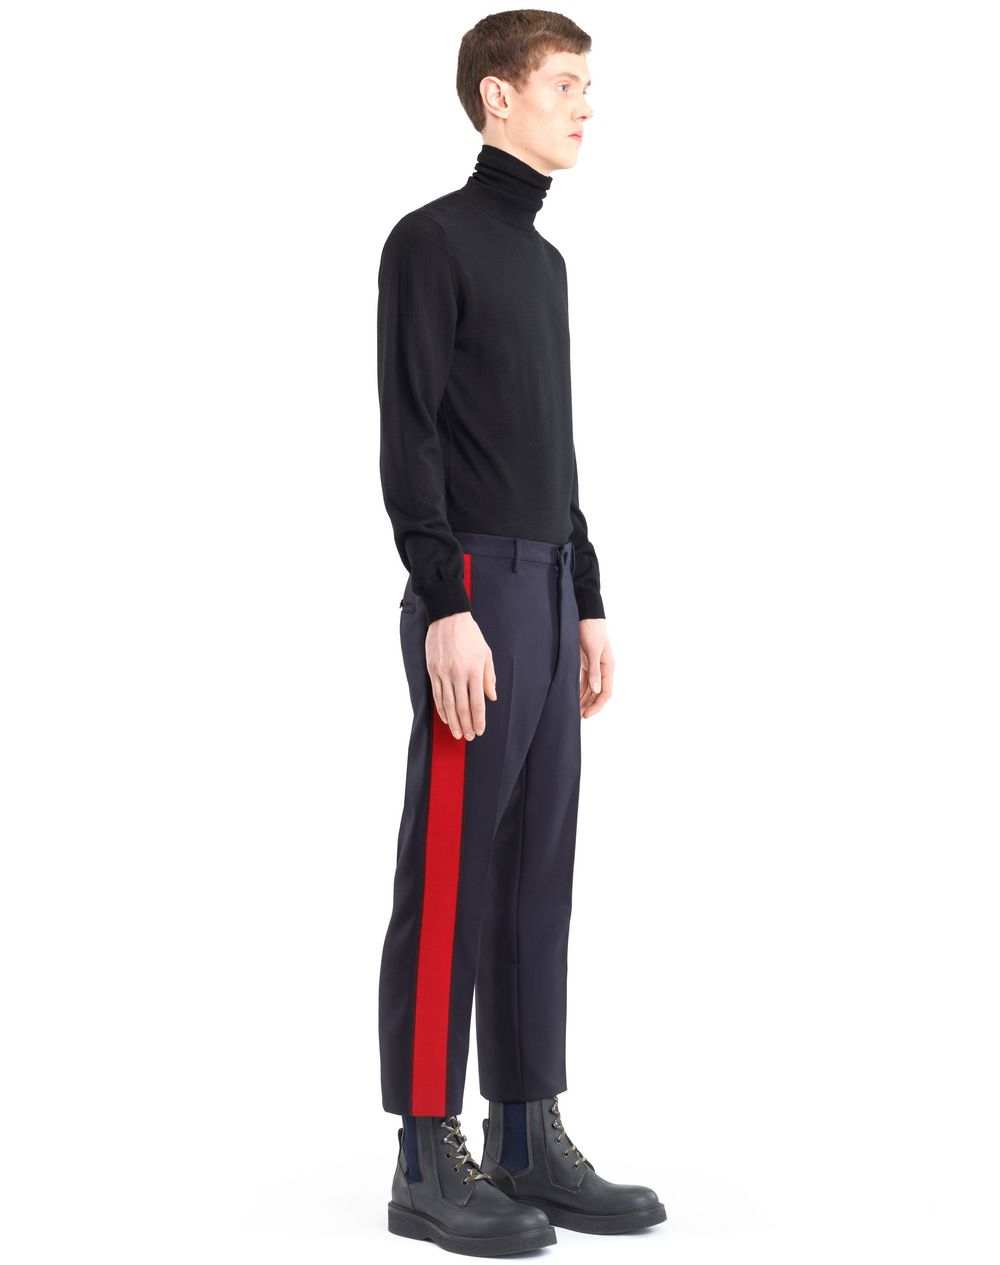 STRAIGHT-LEG PANTS WITH RED TRIM - Lanvin